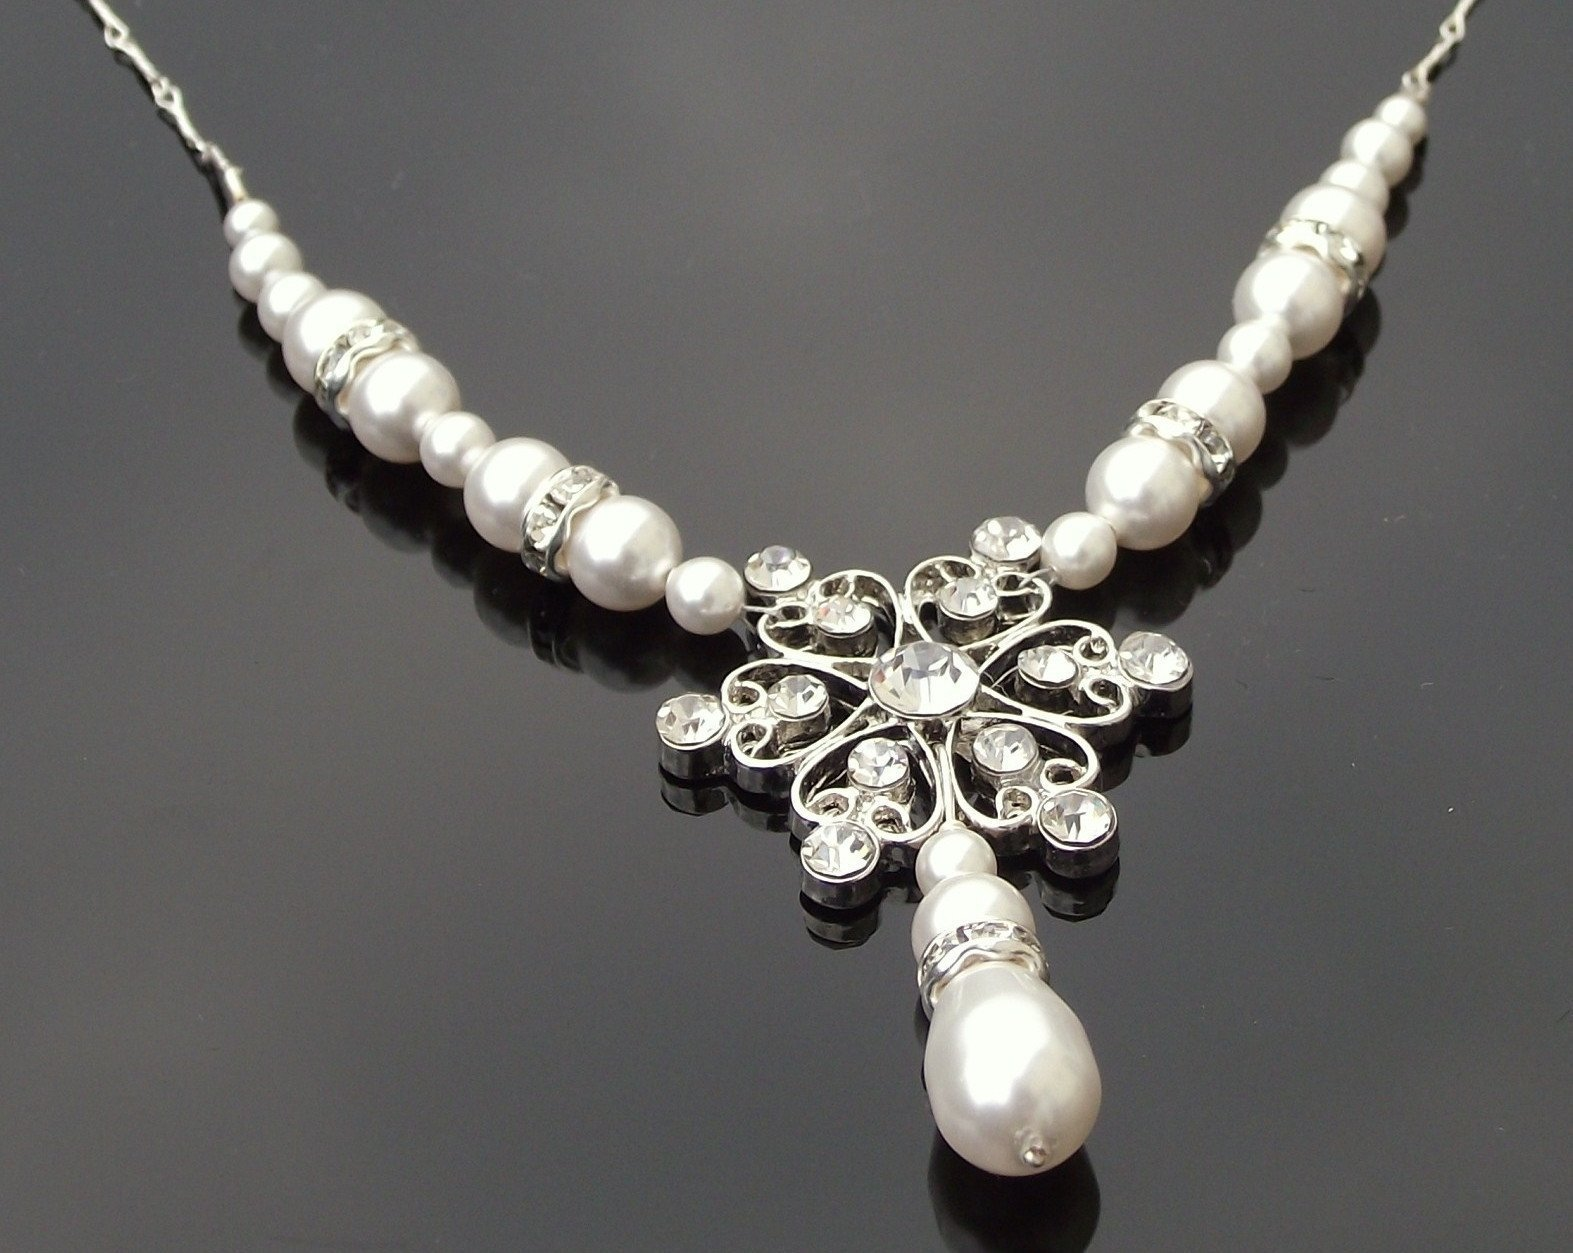 Wedding Necklace - Vintage Style Rhinestone Pearl Necklace, Willow